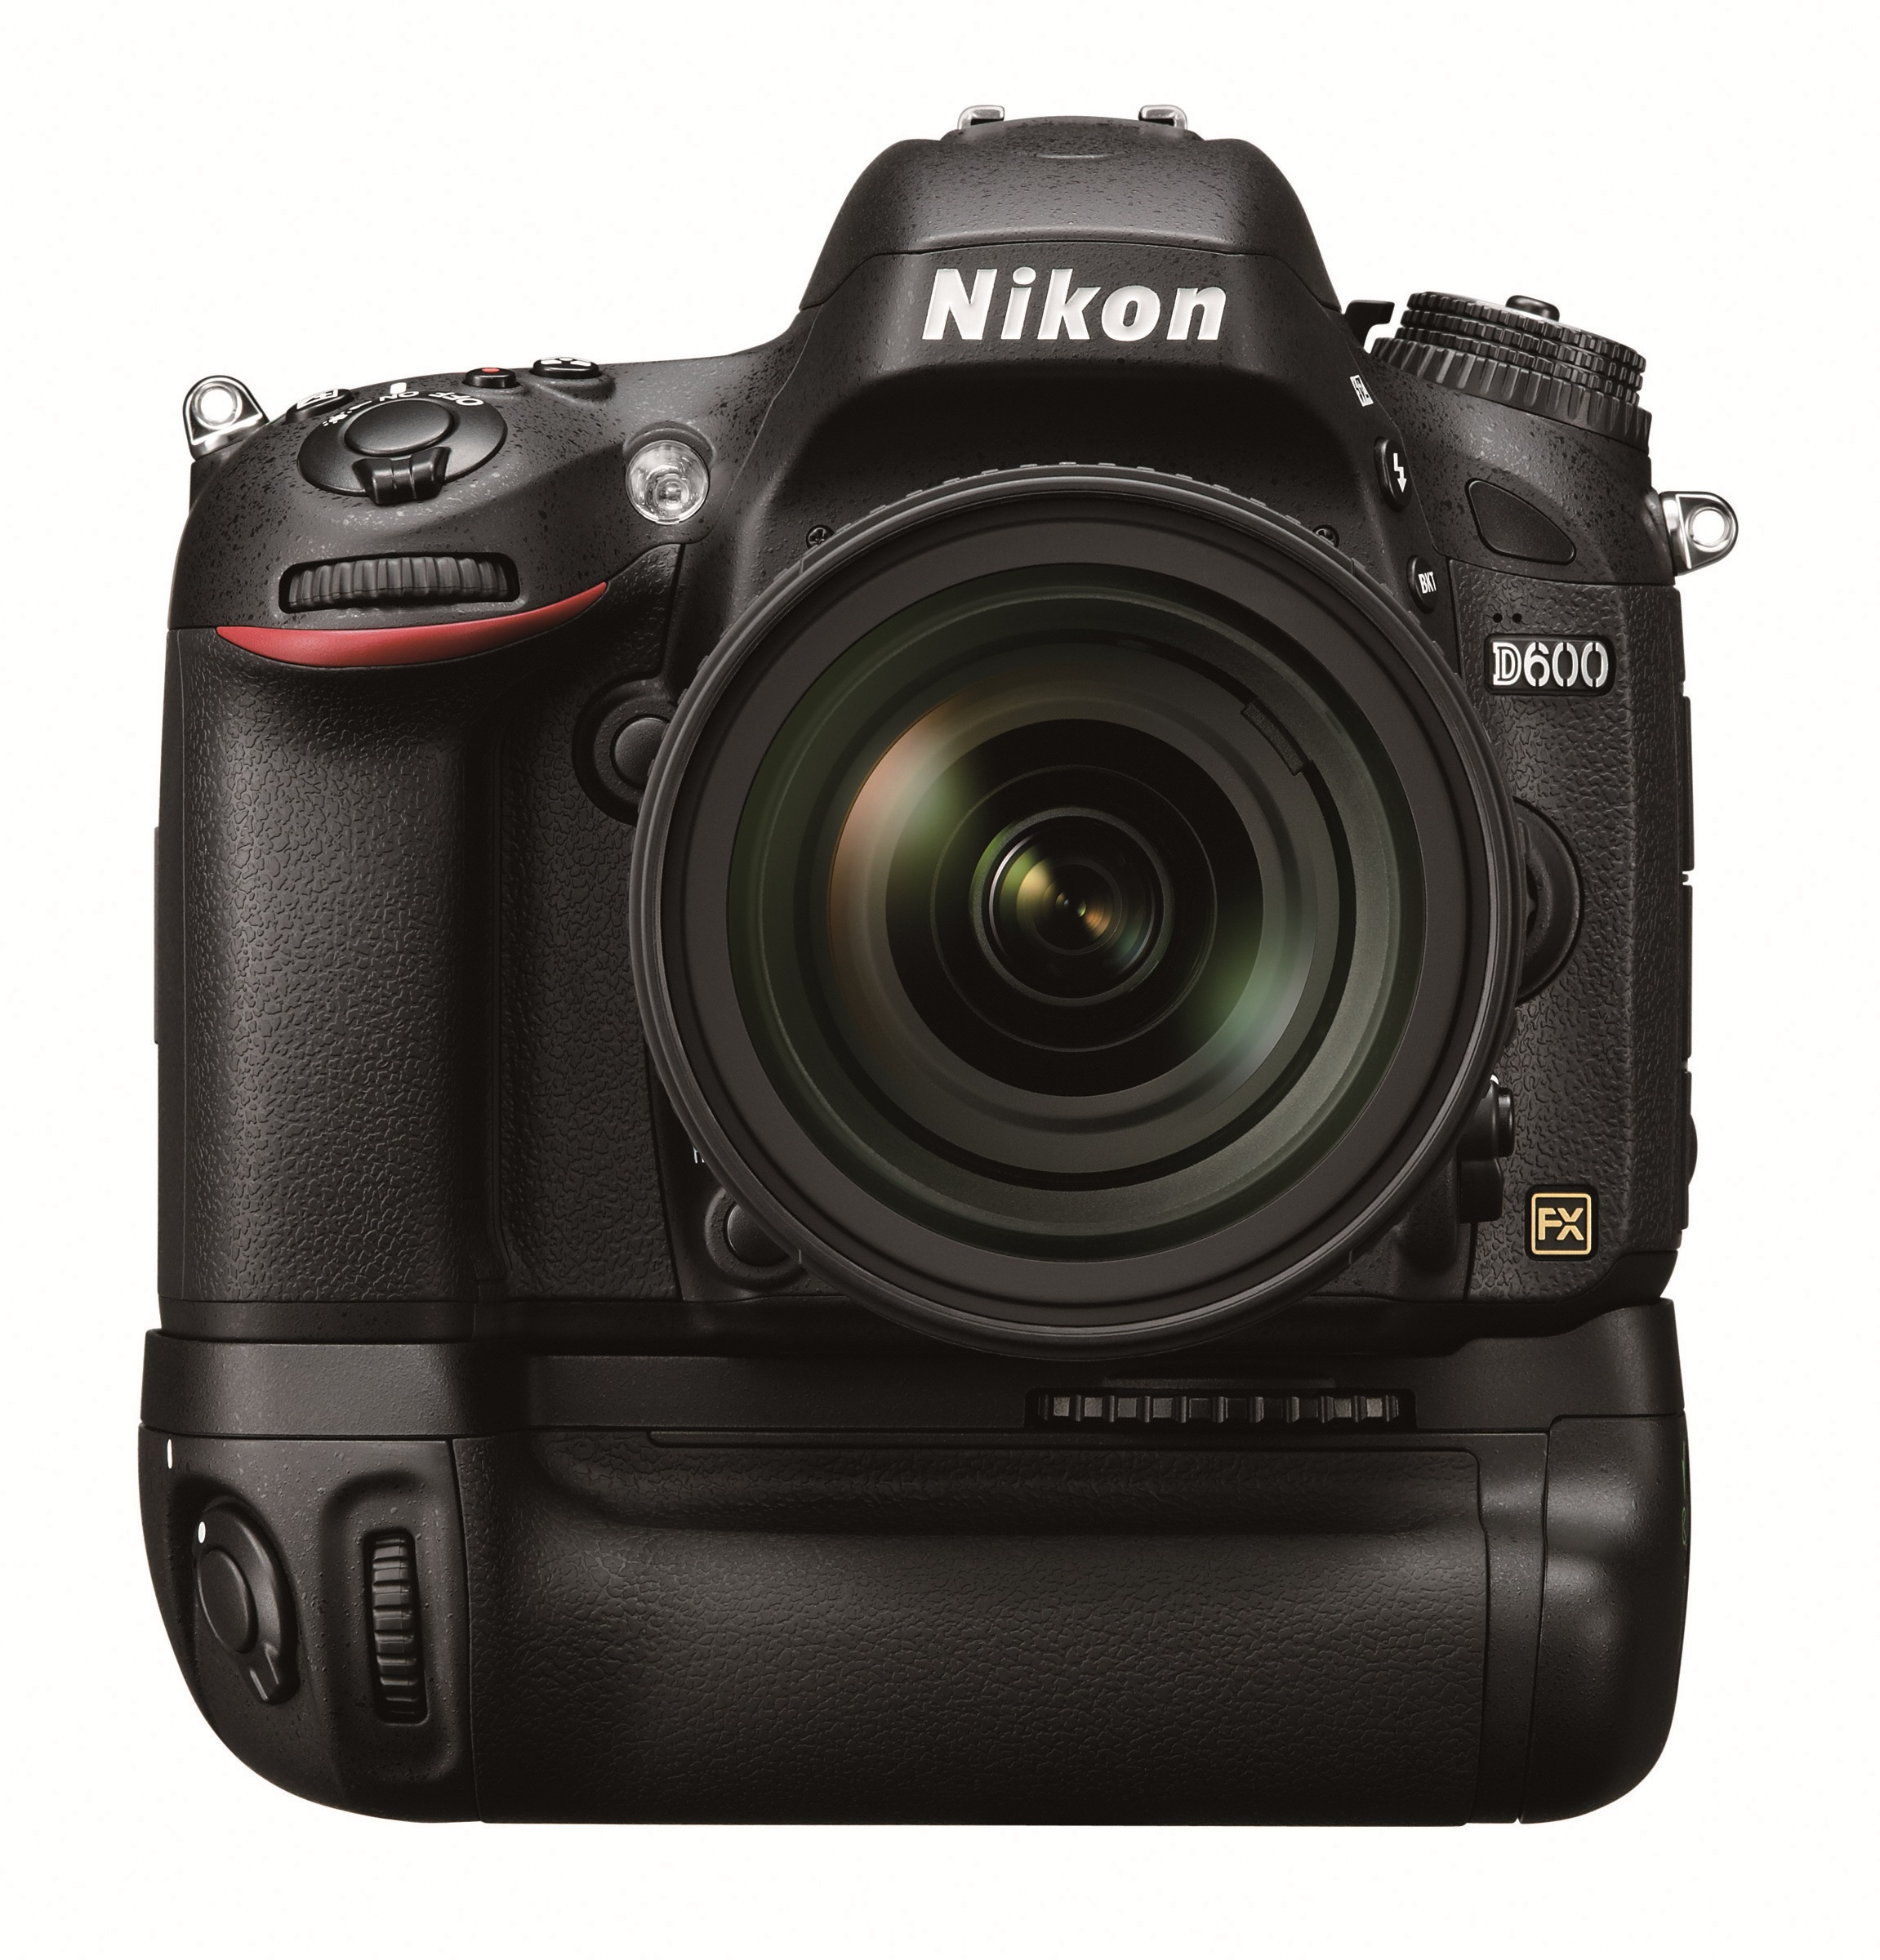 Camera What Is A Full Frame Dslr Camera nikon announces the d600 a new full frame dslr with 24mp sensor